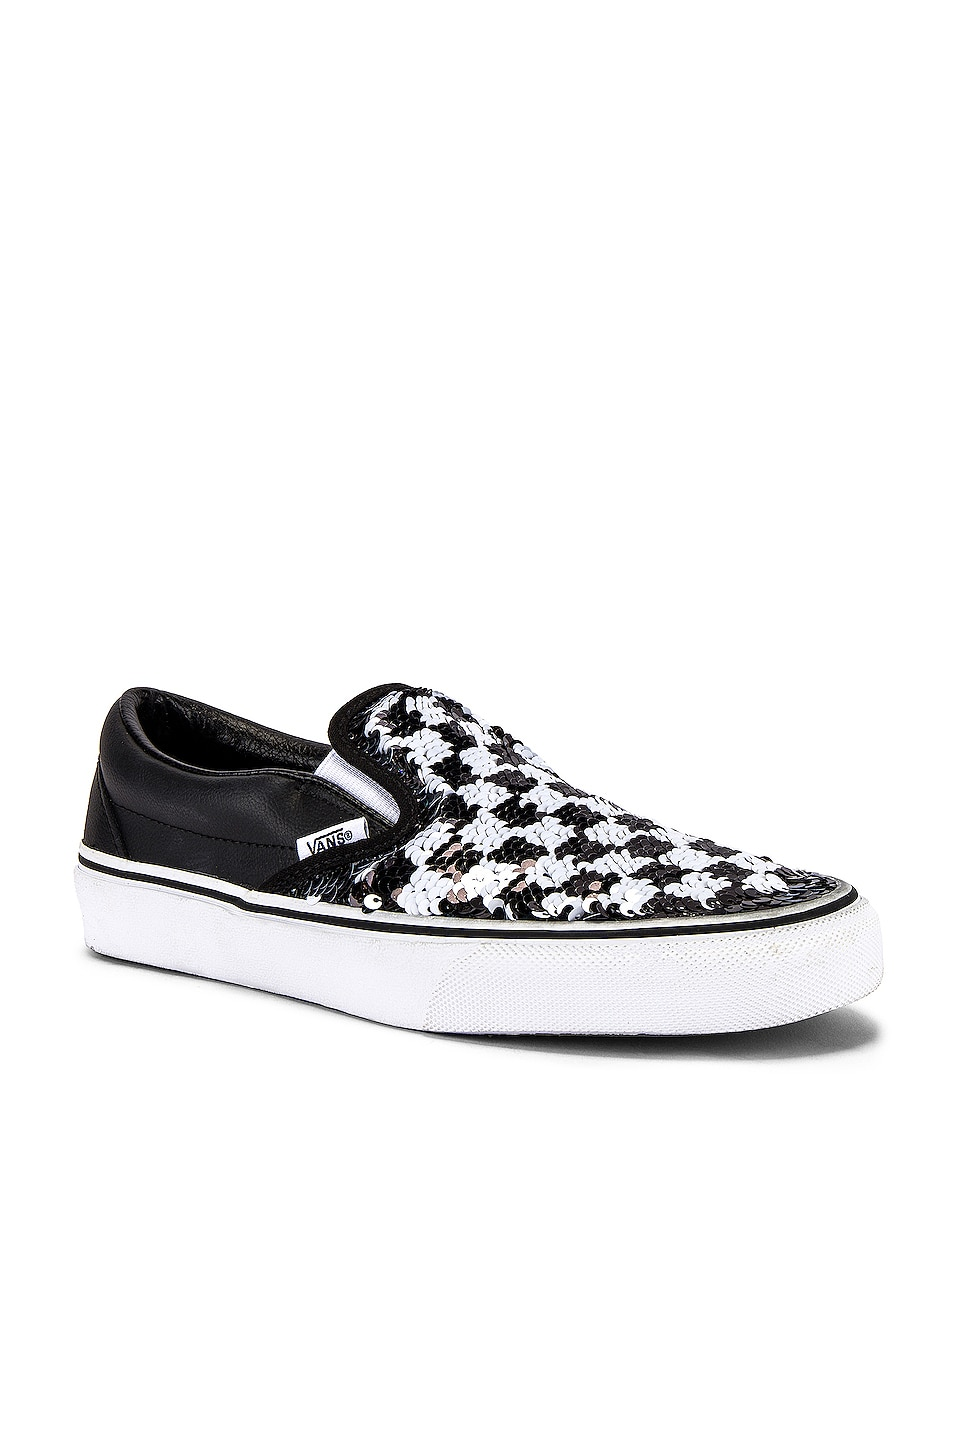 Vans Classic Slip-On in Checkerboard & Black